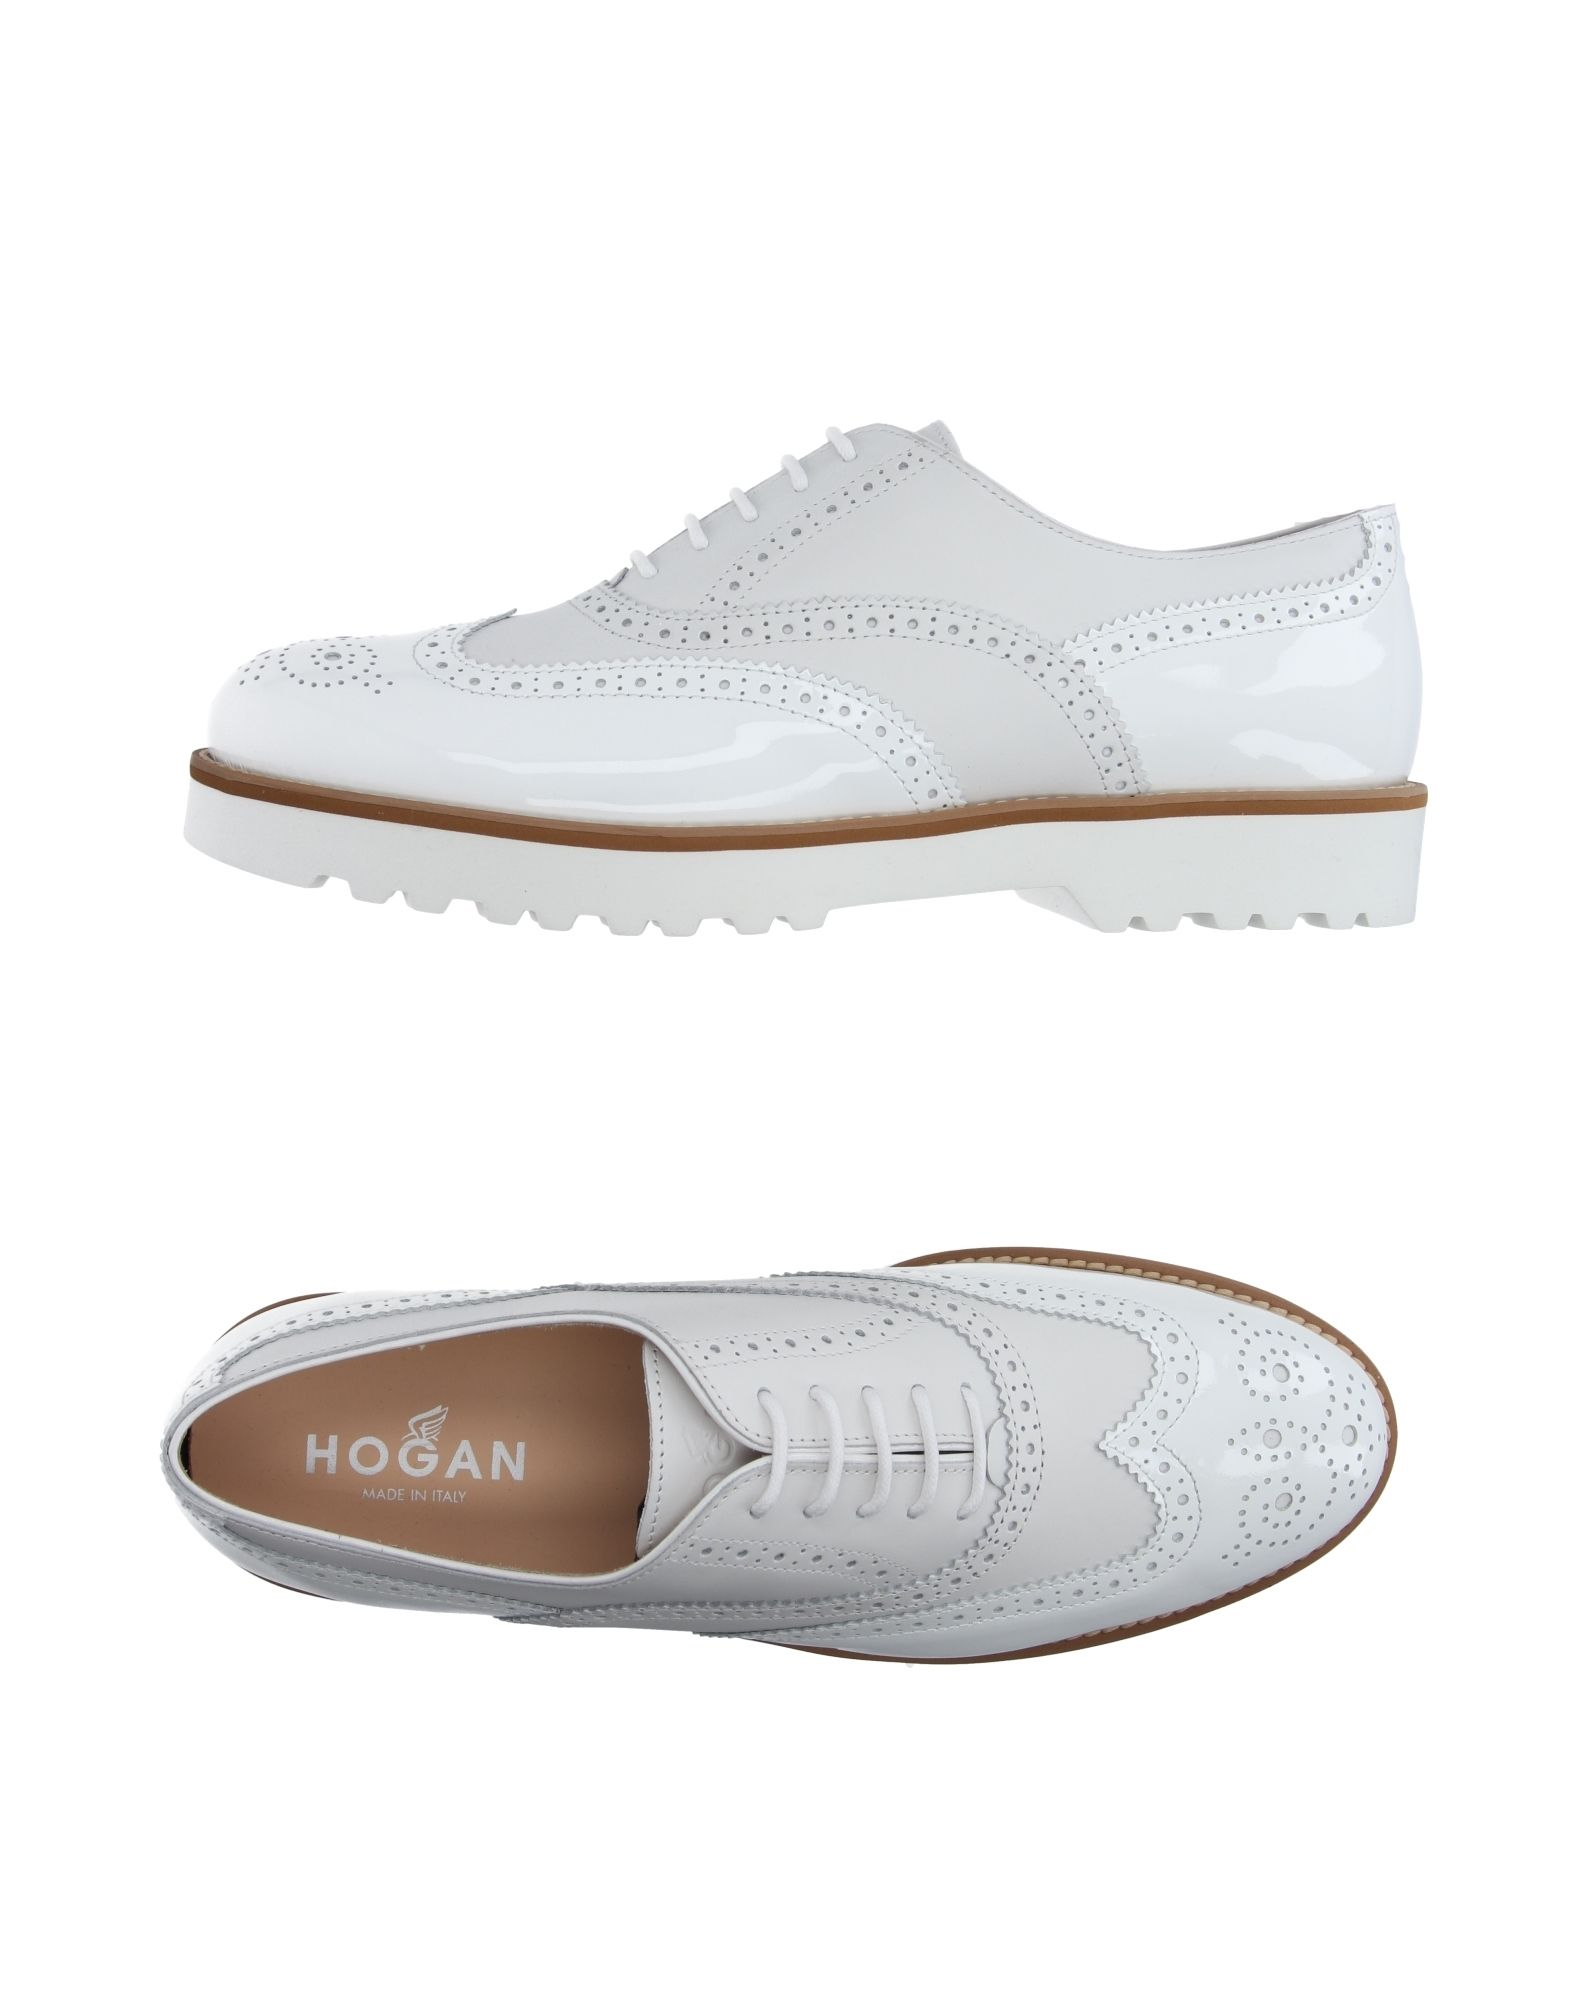 HOGAN Lace-up shoes. varnished effect, logo, solid color, round toeline, leather lining, rubber sole, square heel, contains non-textile parts of animal origin. Soft Leather